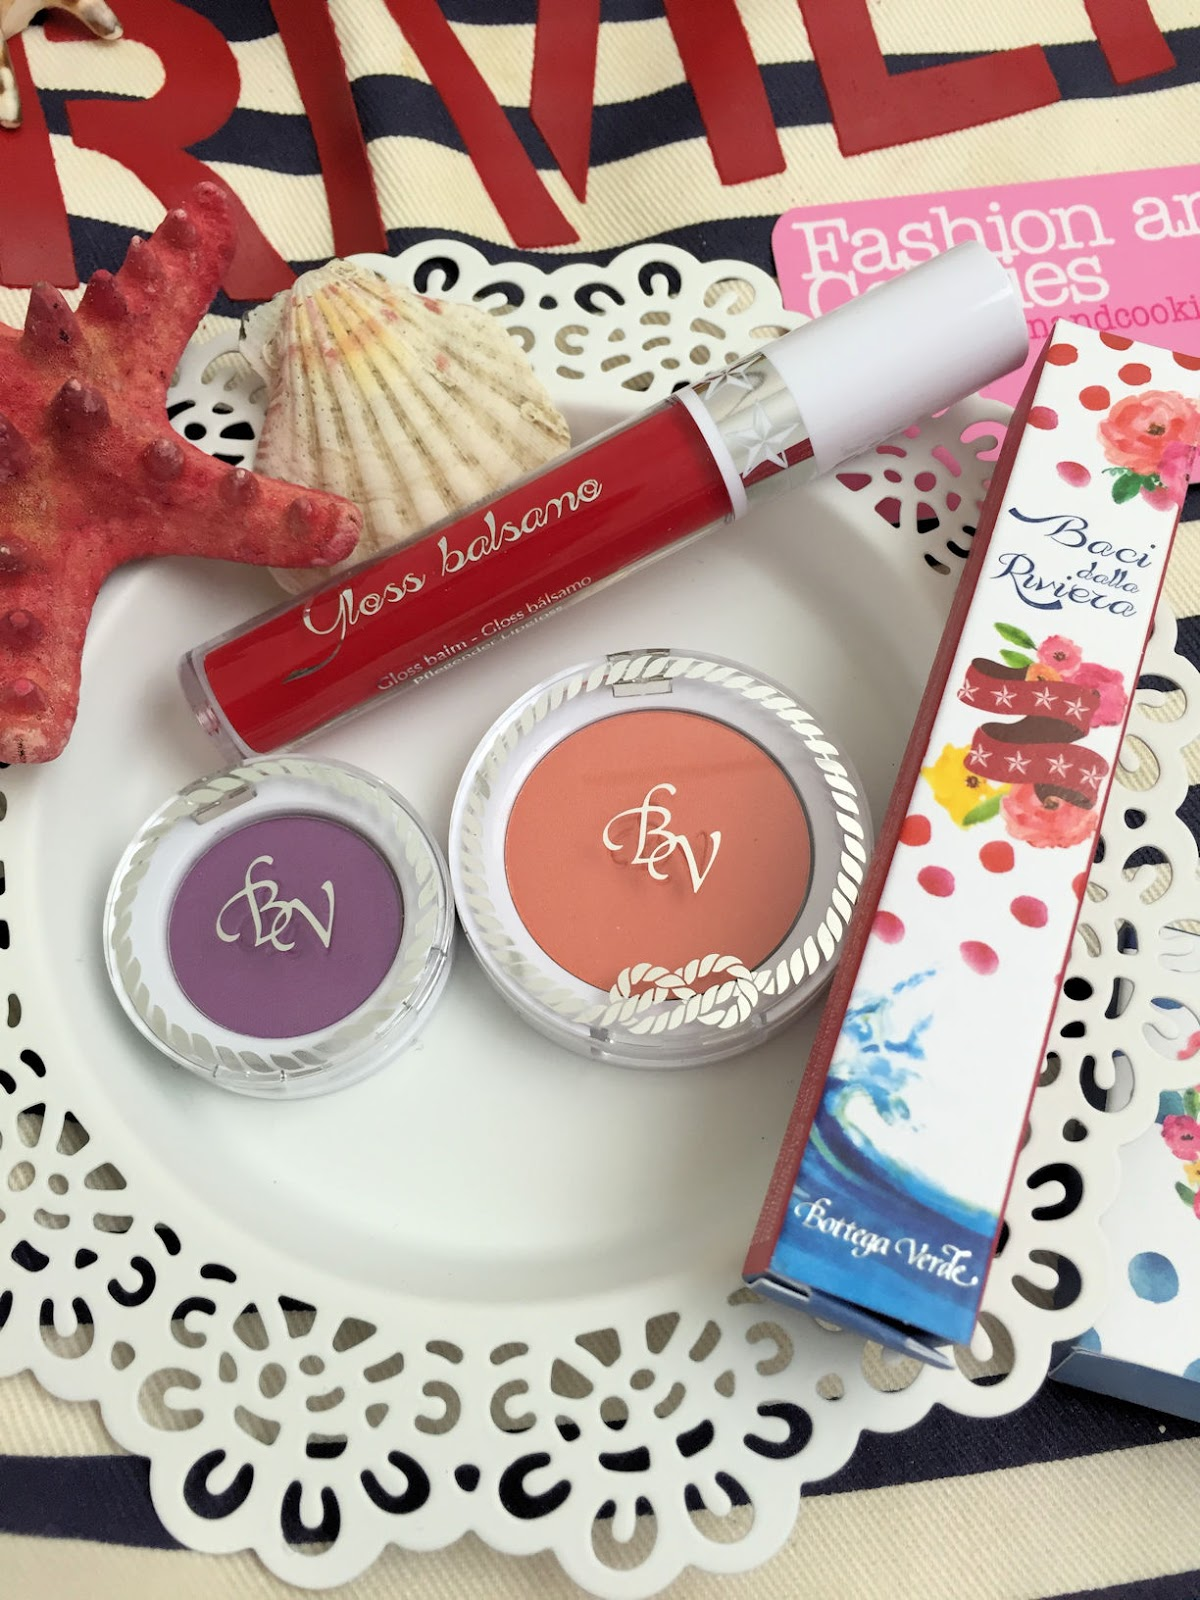 Collezione makeup Riviera  Mediterranea di Bottega Verde su Fashion and Cookies beauty blog, beauty blogger